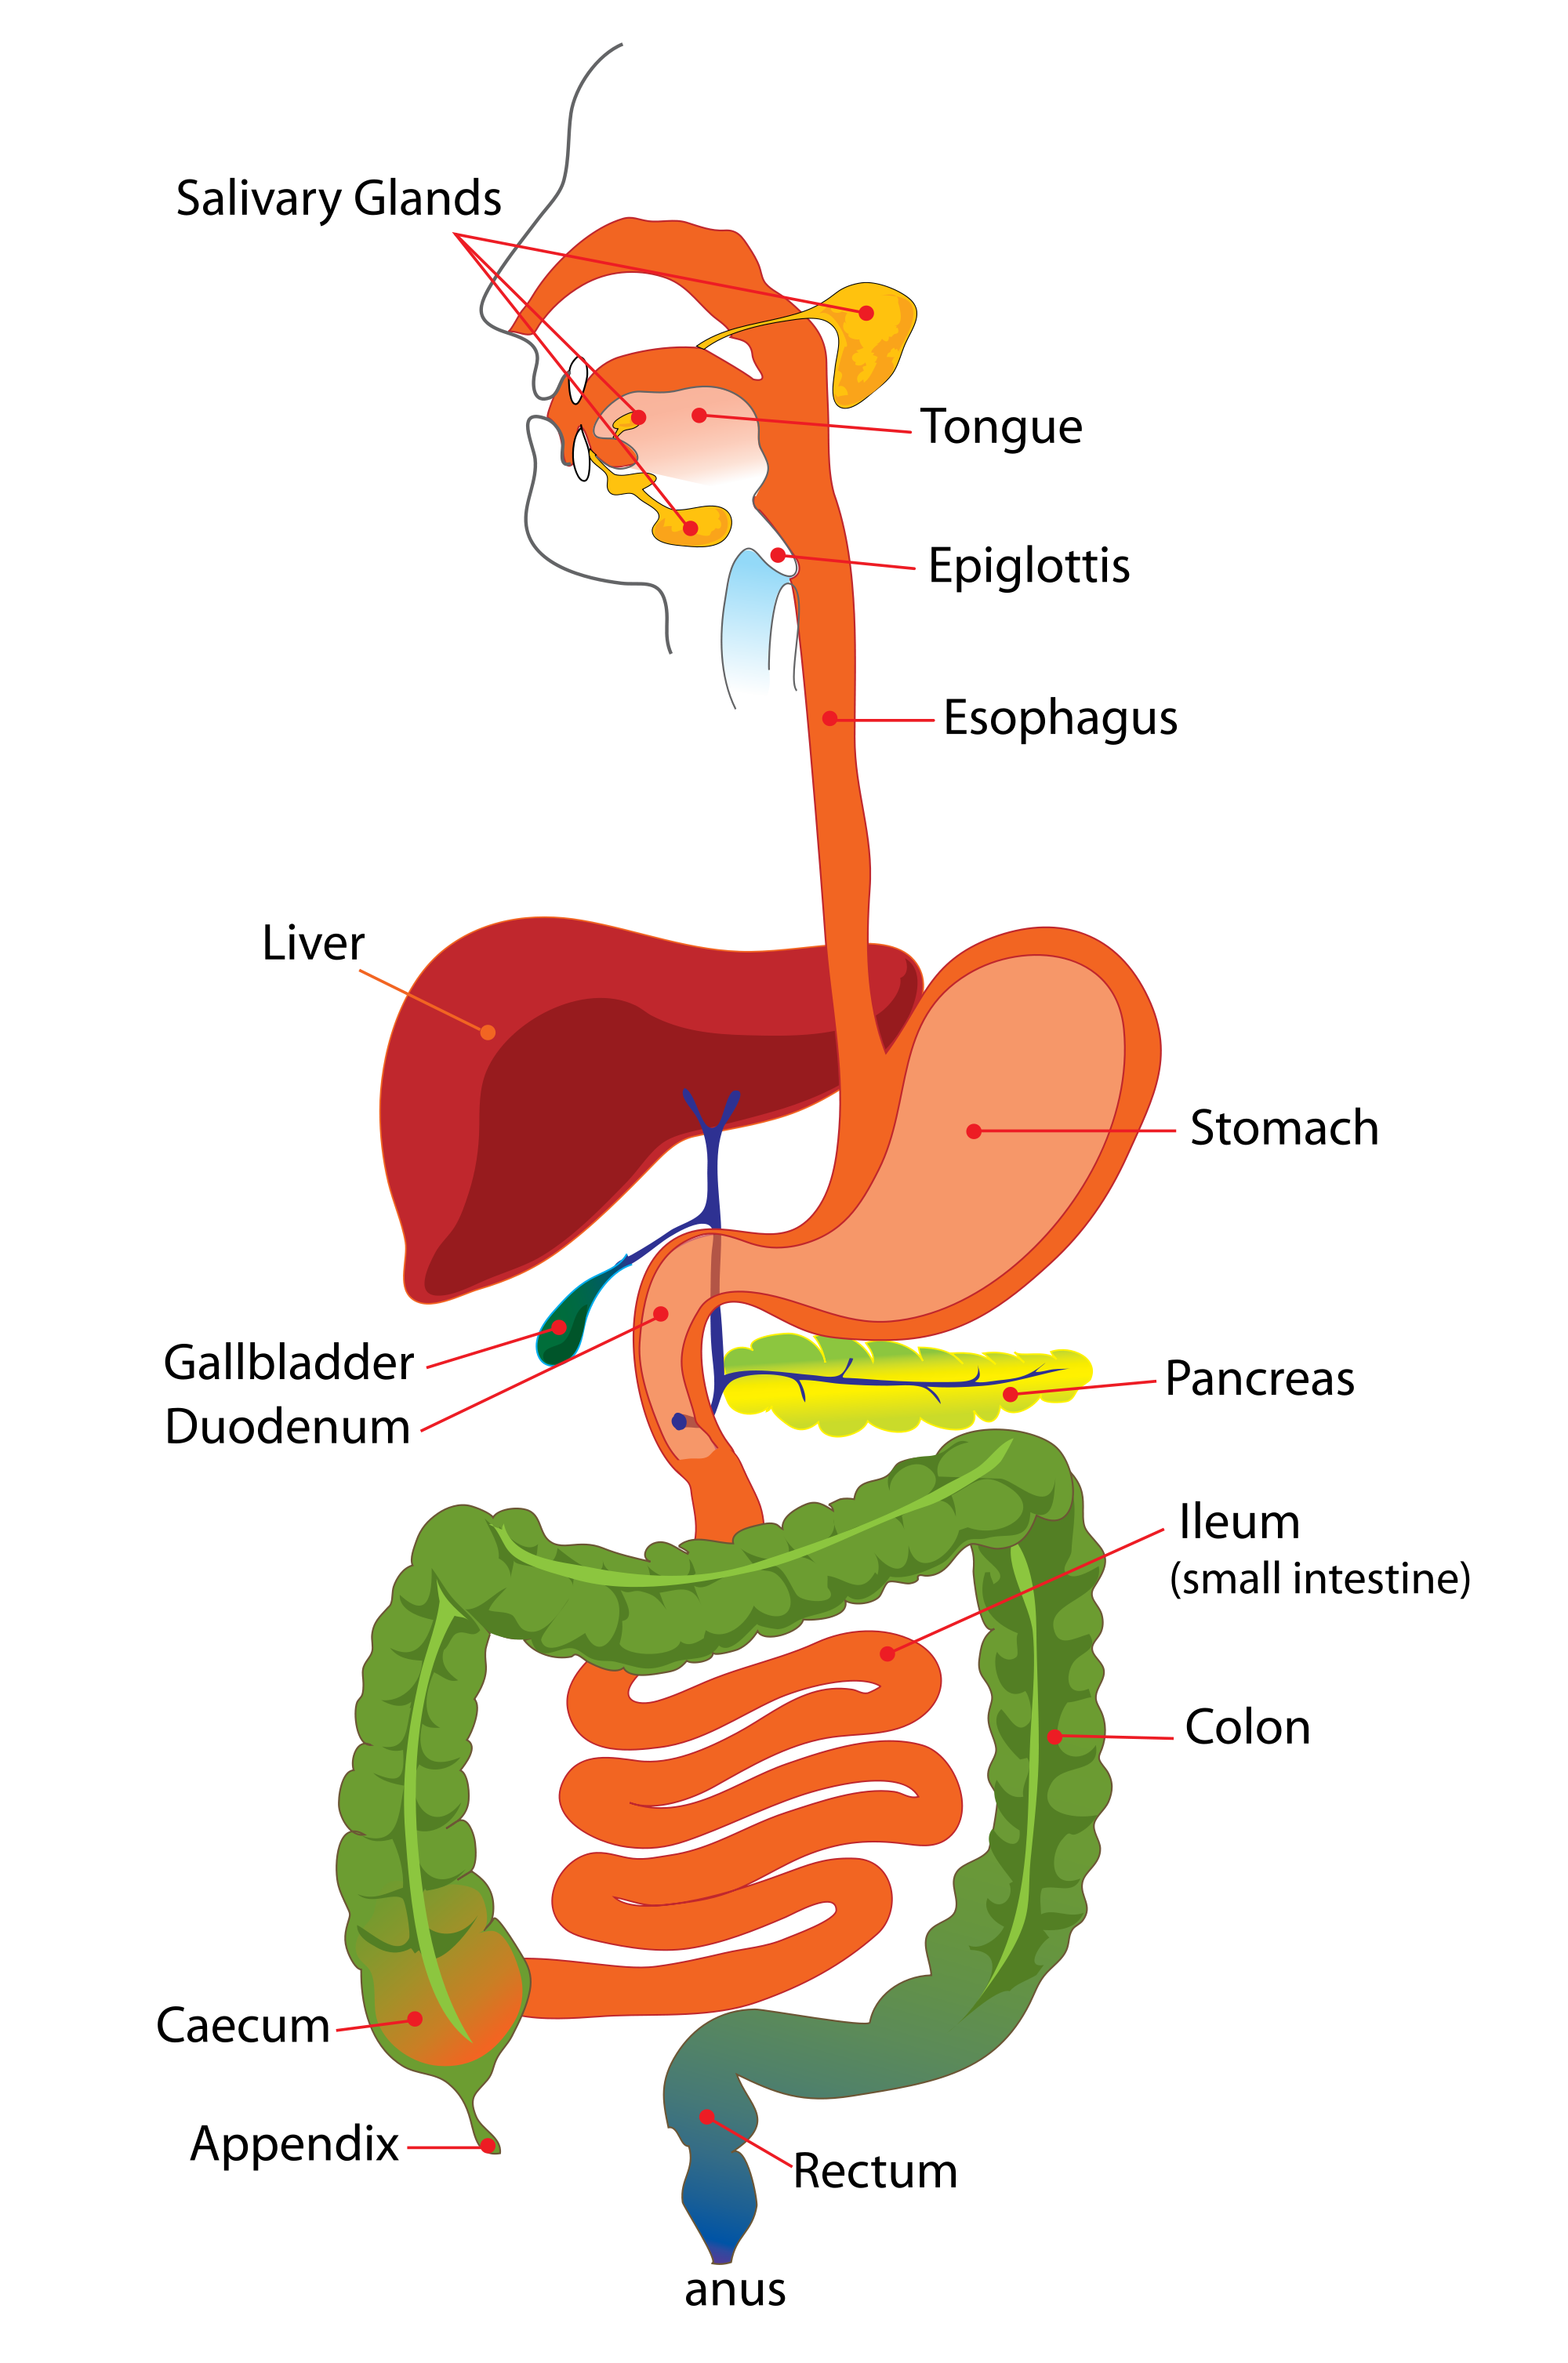 Digestive System Diagram For Kids Amp Digestion Facts With